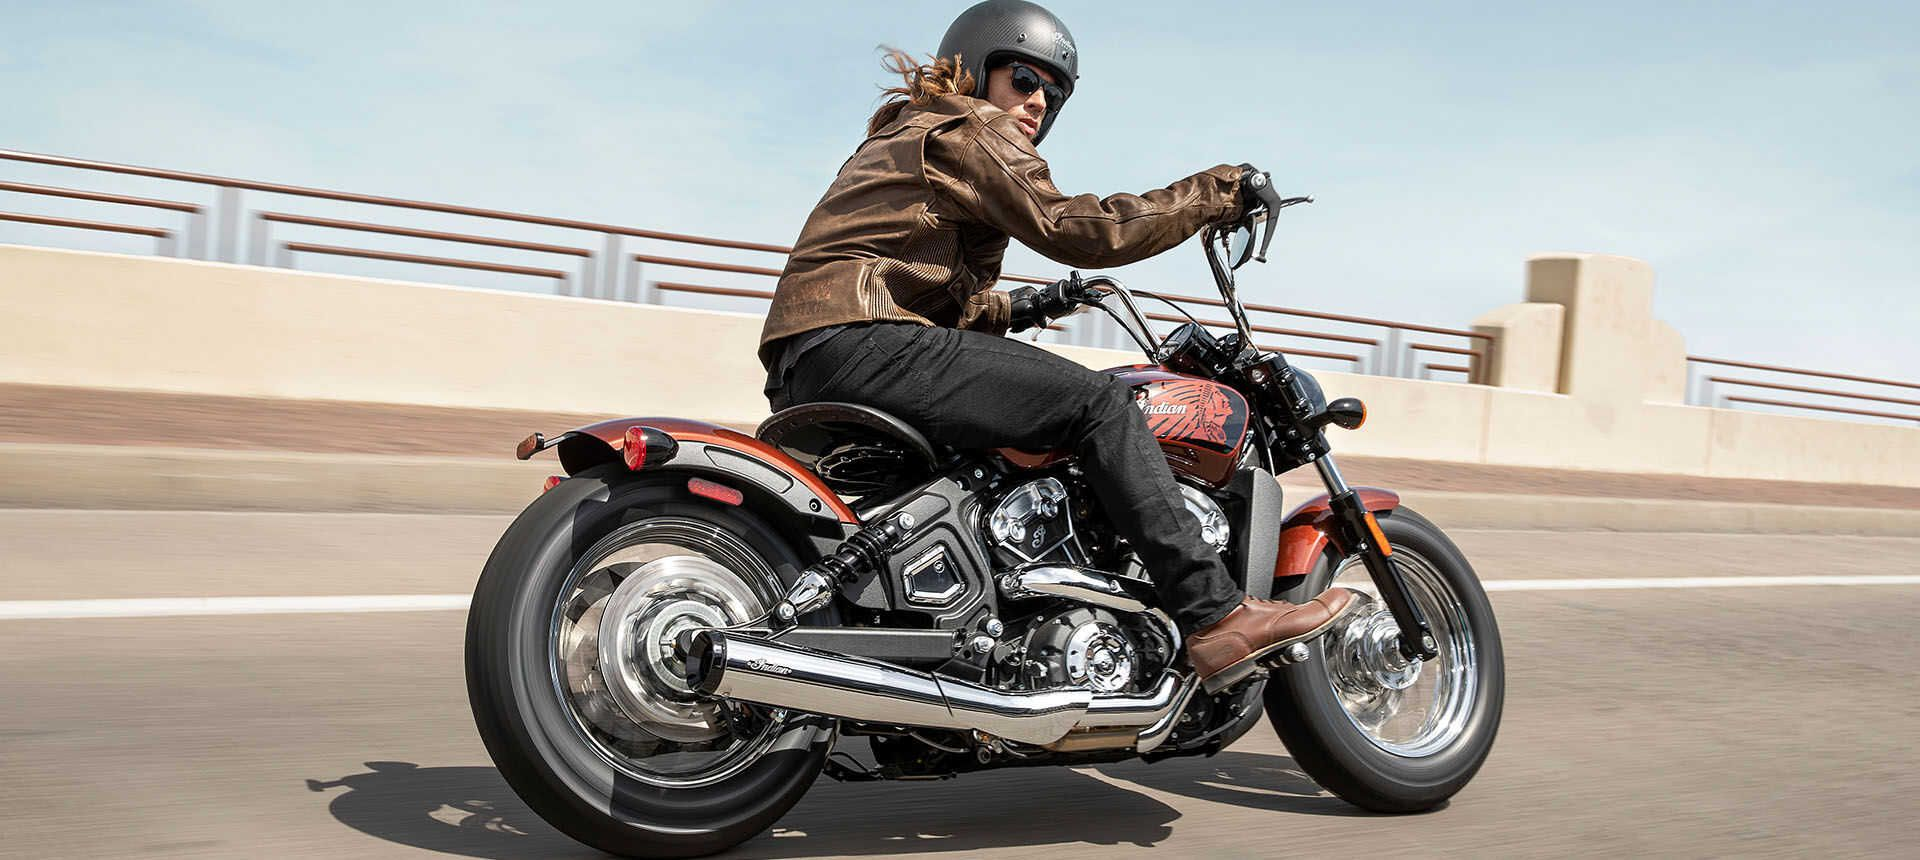 5 Best Bobbers You Can Buy Wind Burned Eyes Indian Motorcycle Indian Scout Bobber [ 860 x 1920 Pixel ]